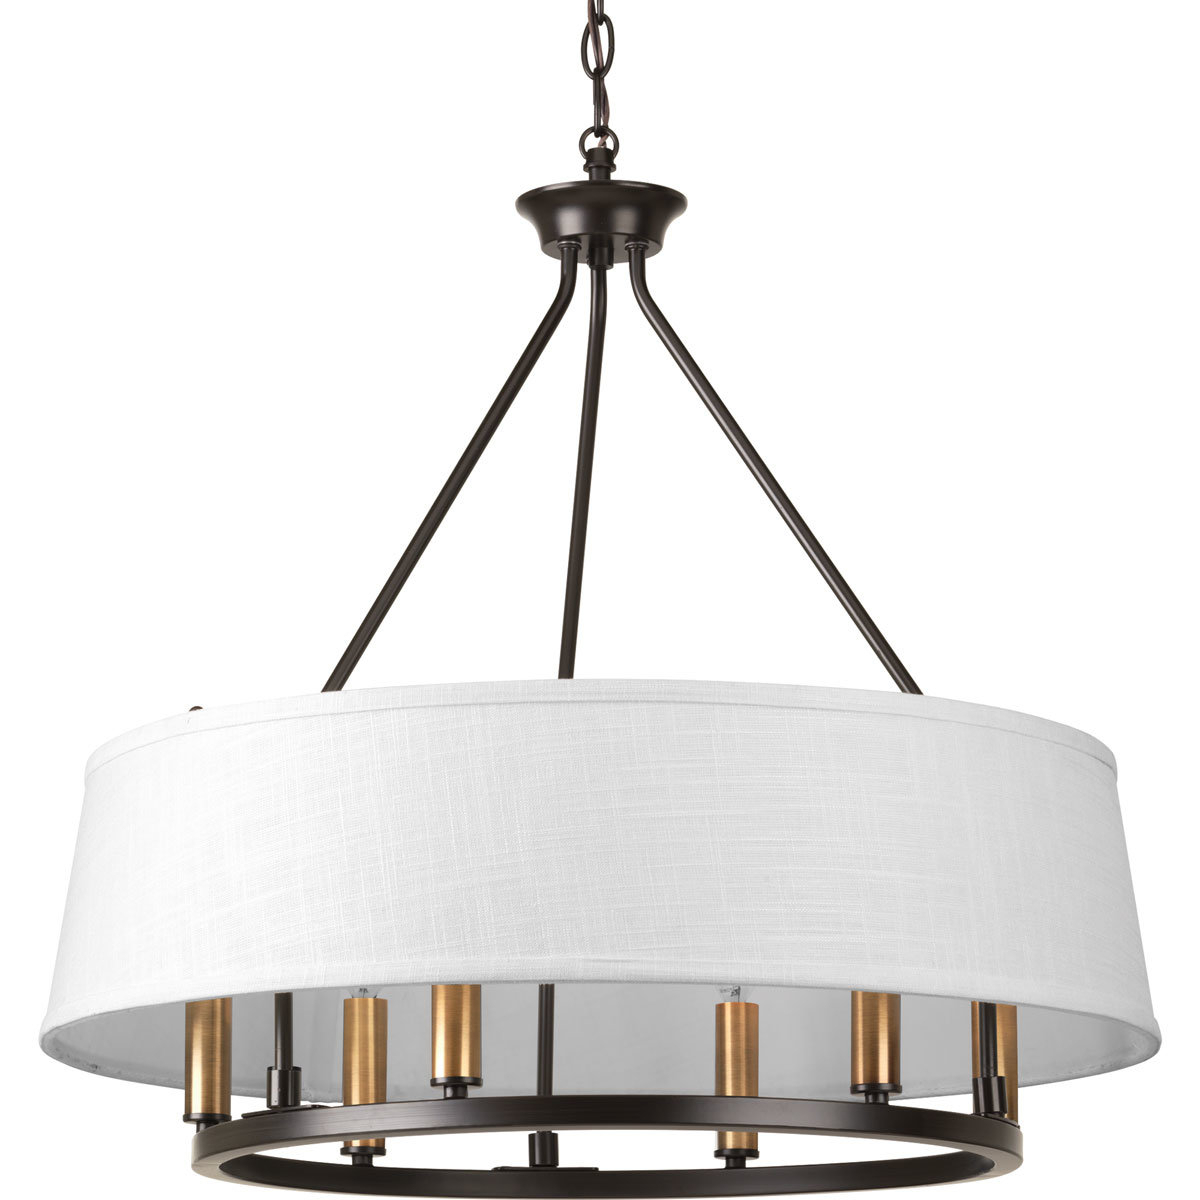 Hughett 6-Light Drum Chandelier throughout 2020 Harlan 5-Light Drum Chandeliers